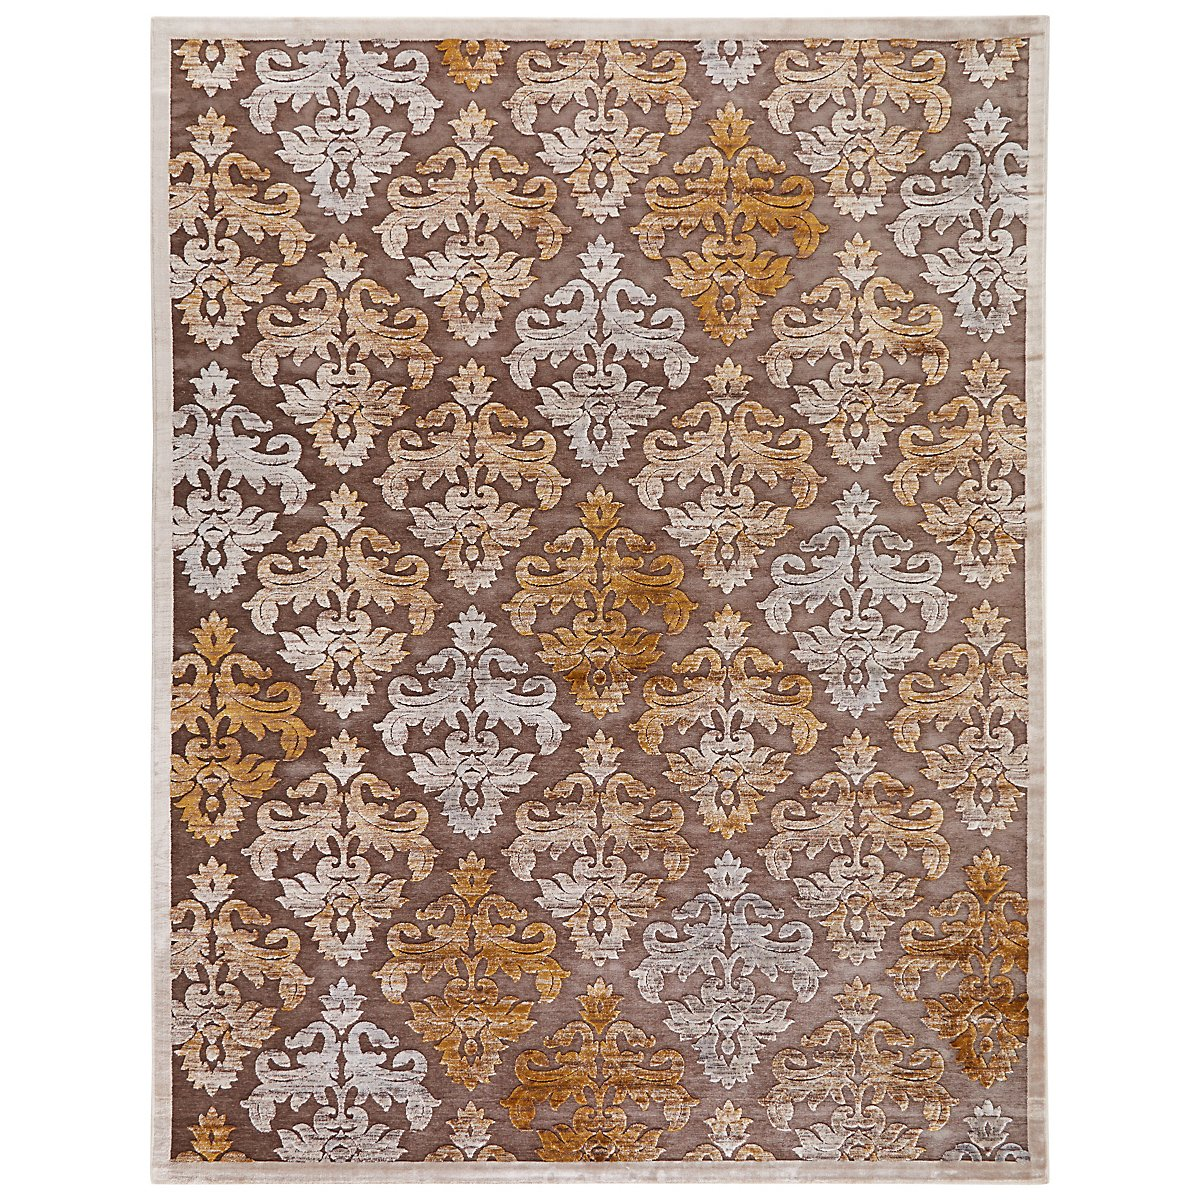 Majestic Gold 8X10 Area Rug